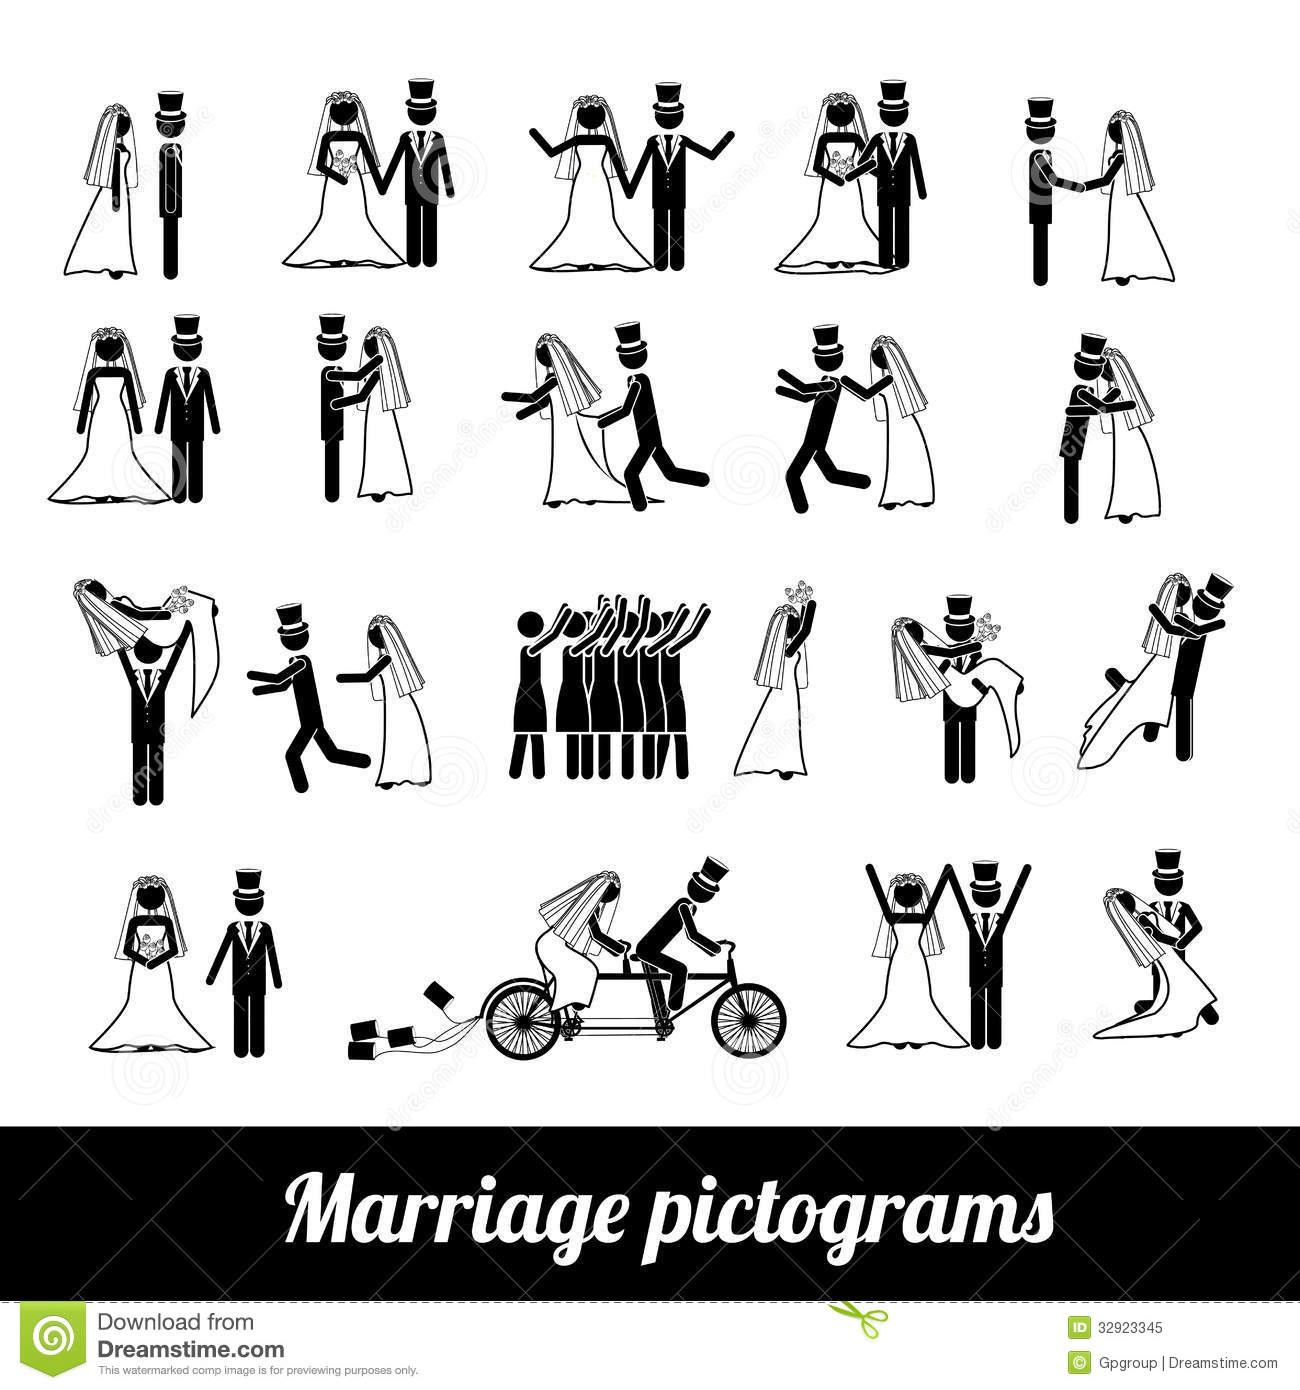 Marriage Pictograms Royalty Free Stock Photo - Image: 32923345